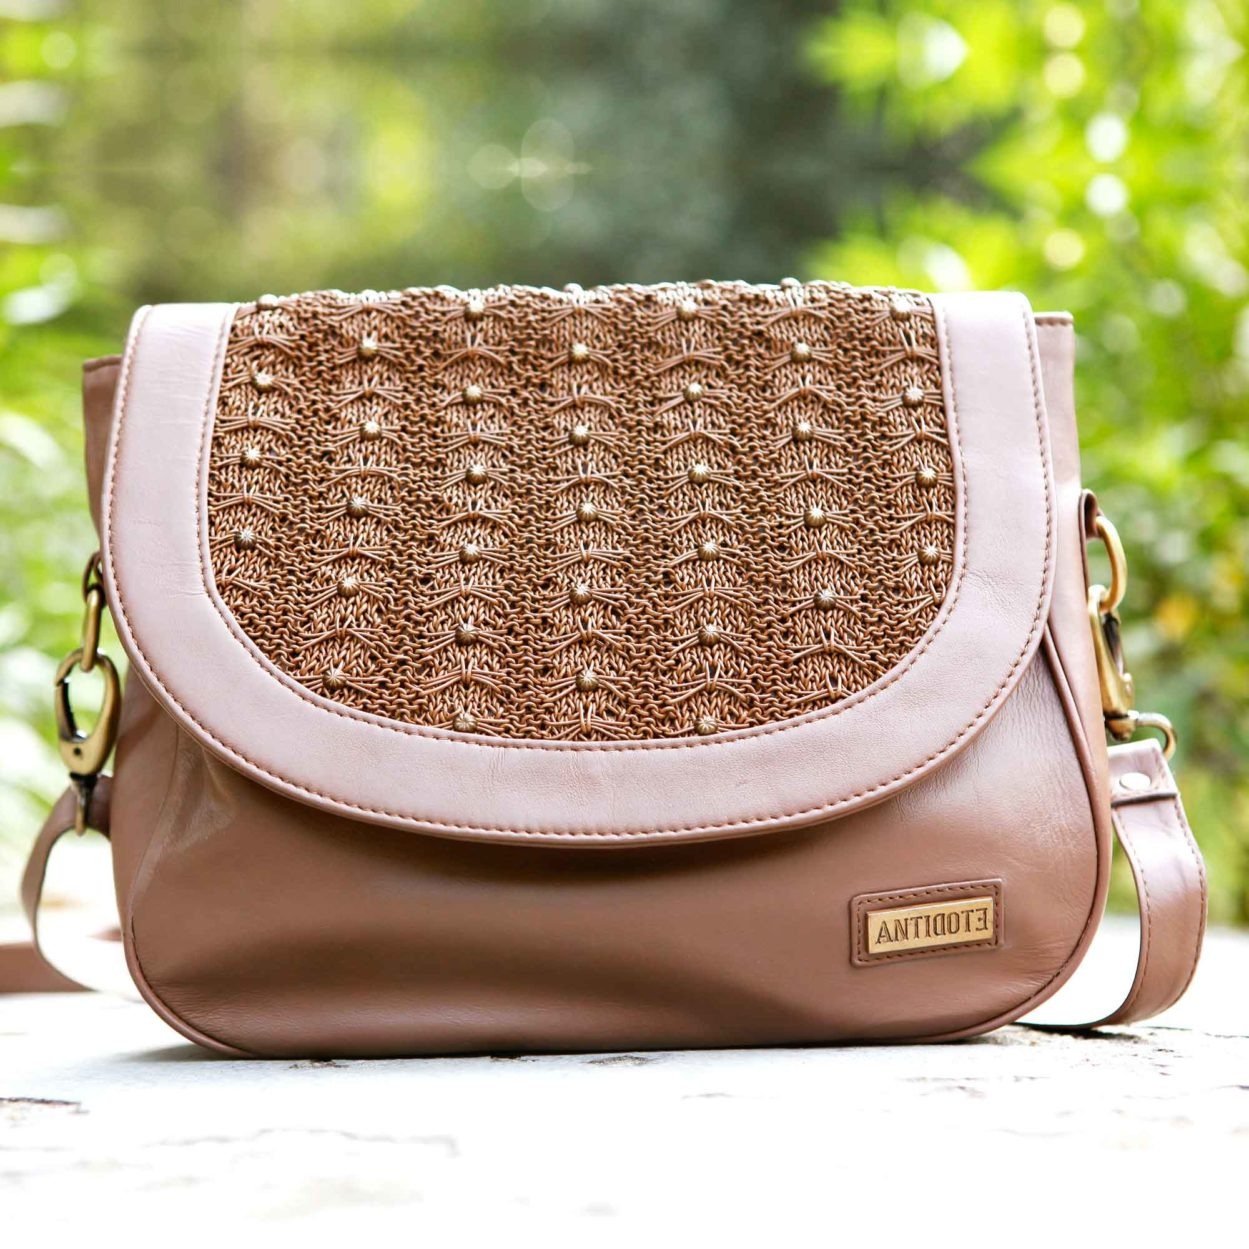 Froufrou Chestnut saddle bag